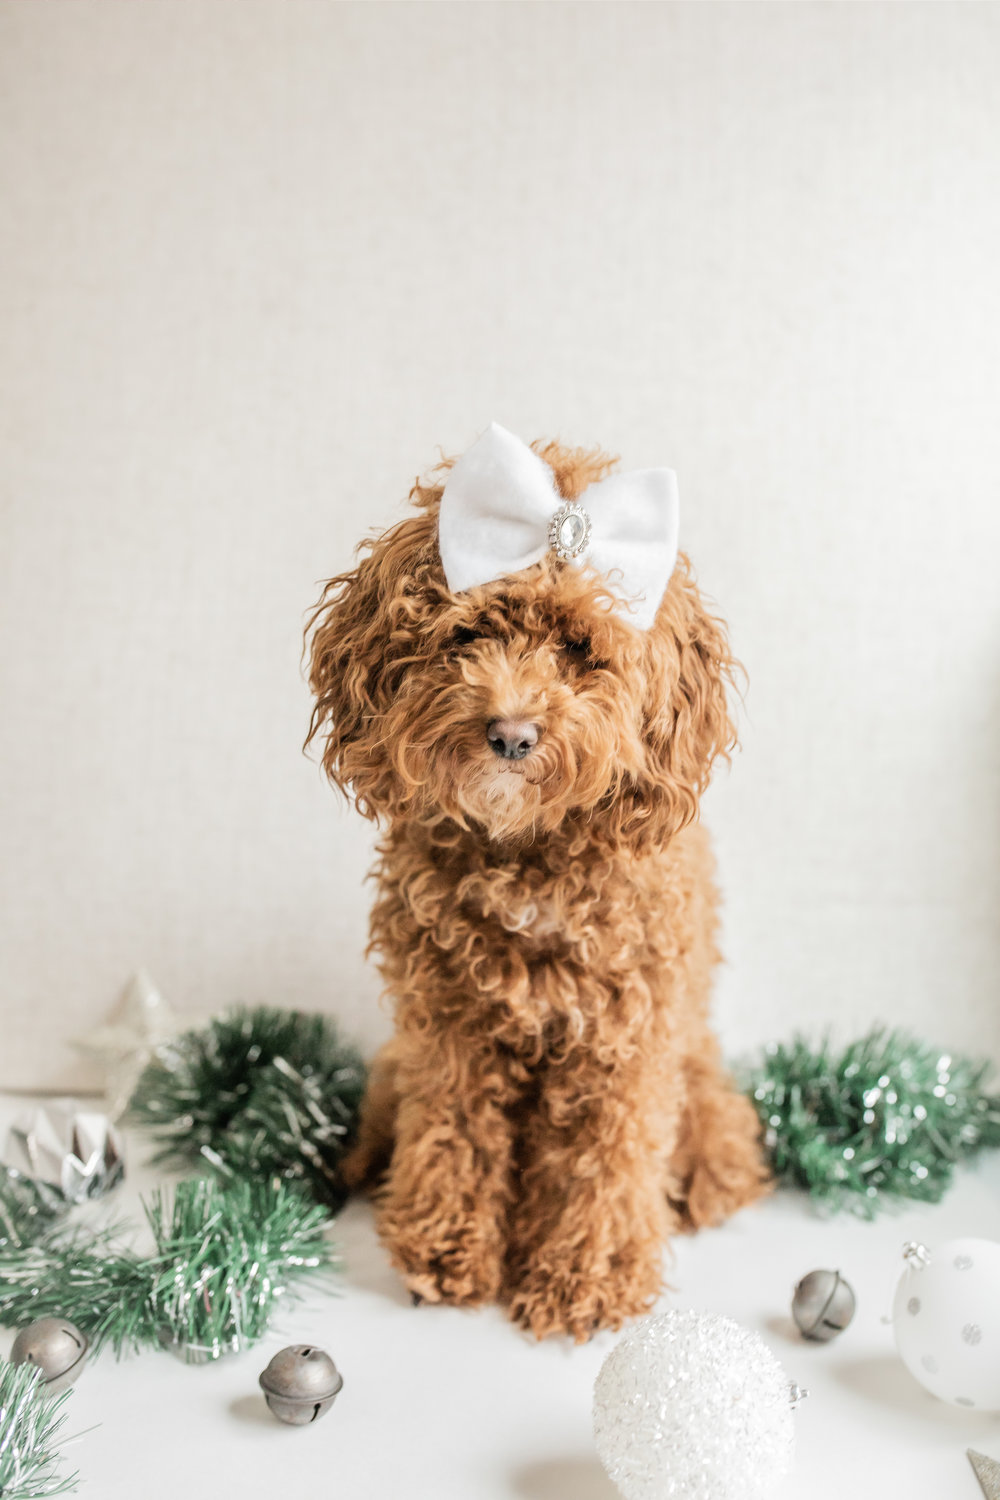 WillowAndWinston_Christmas2018-7.jpg